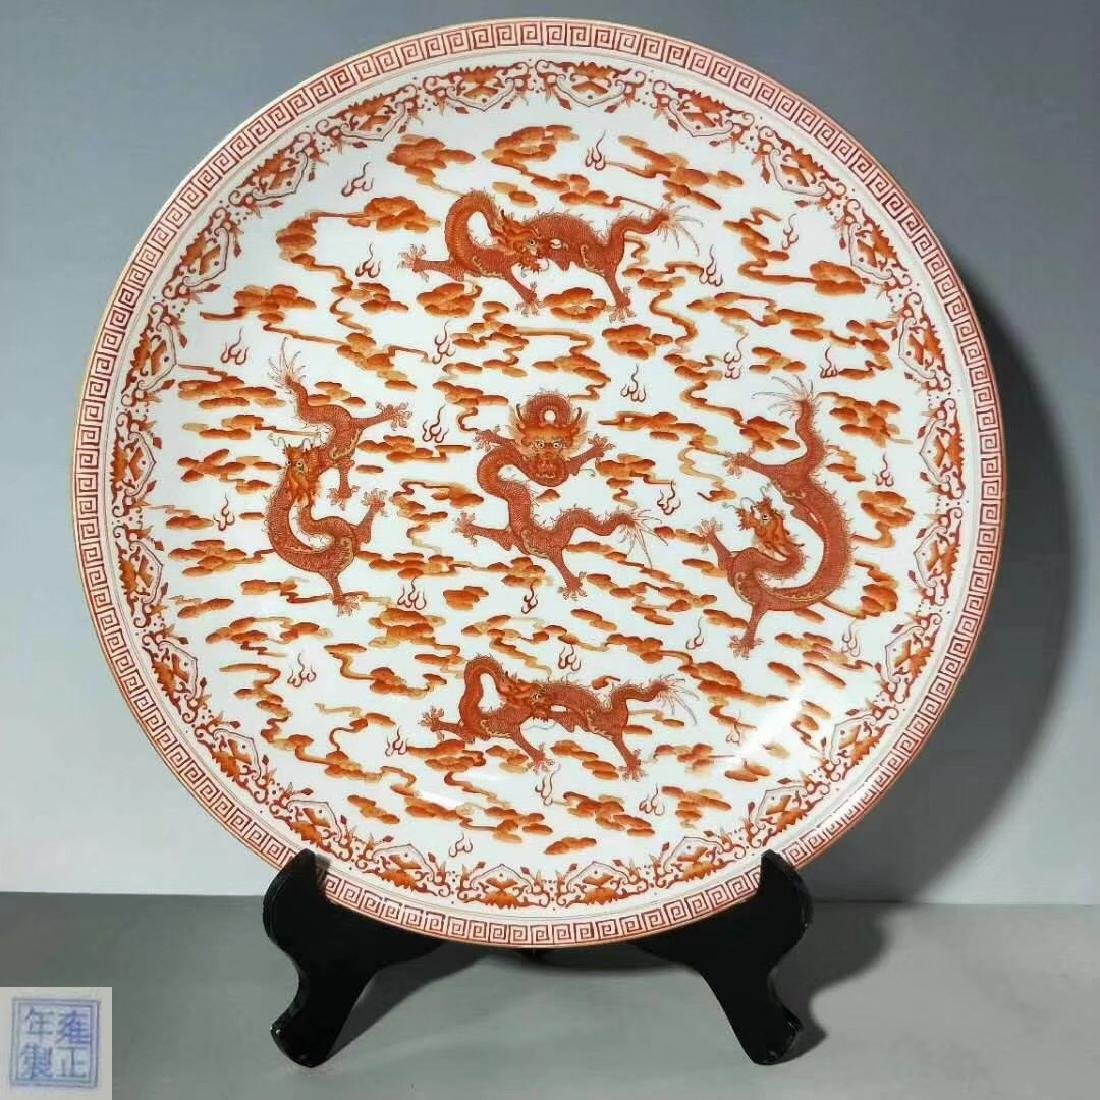 QING IRON-RED GLAZE GILT RIM CHARGER